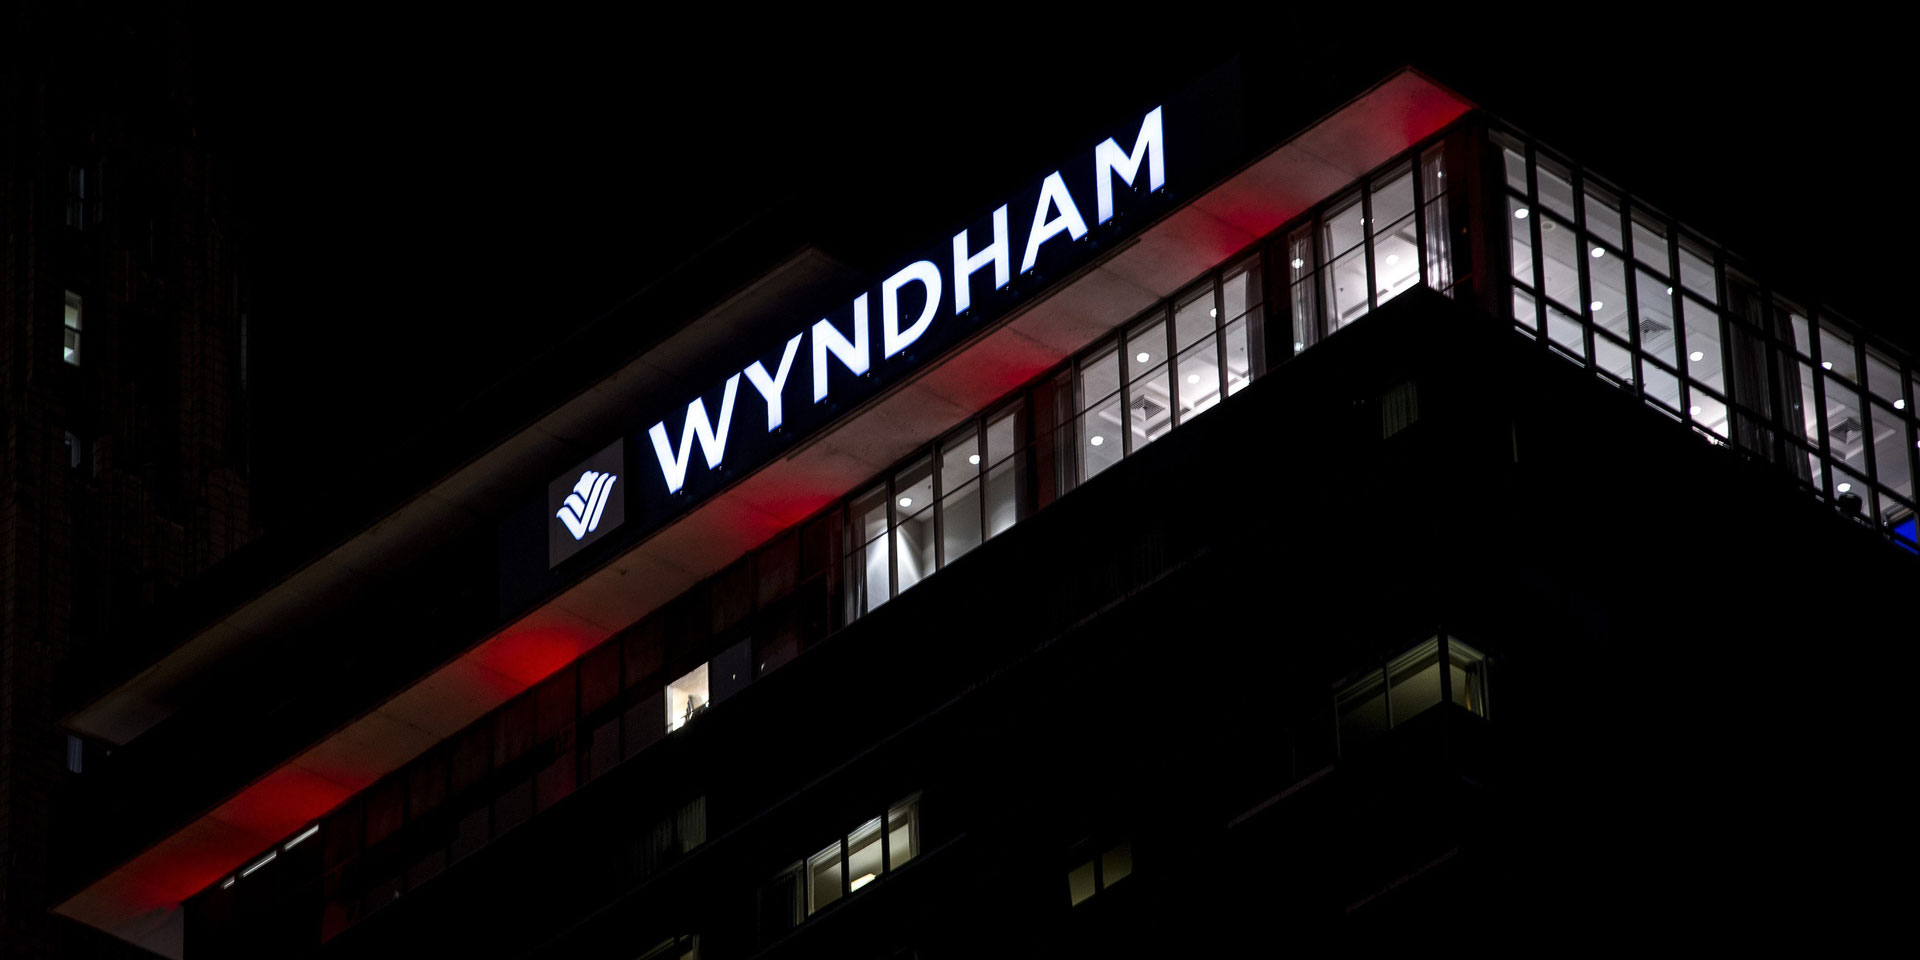 Wyndham's La Quinta acquisition is good news for loyalty program members